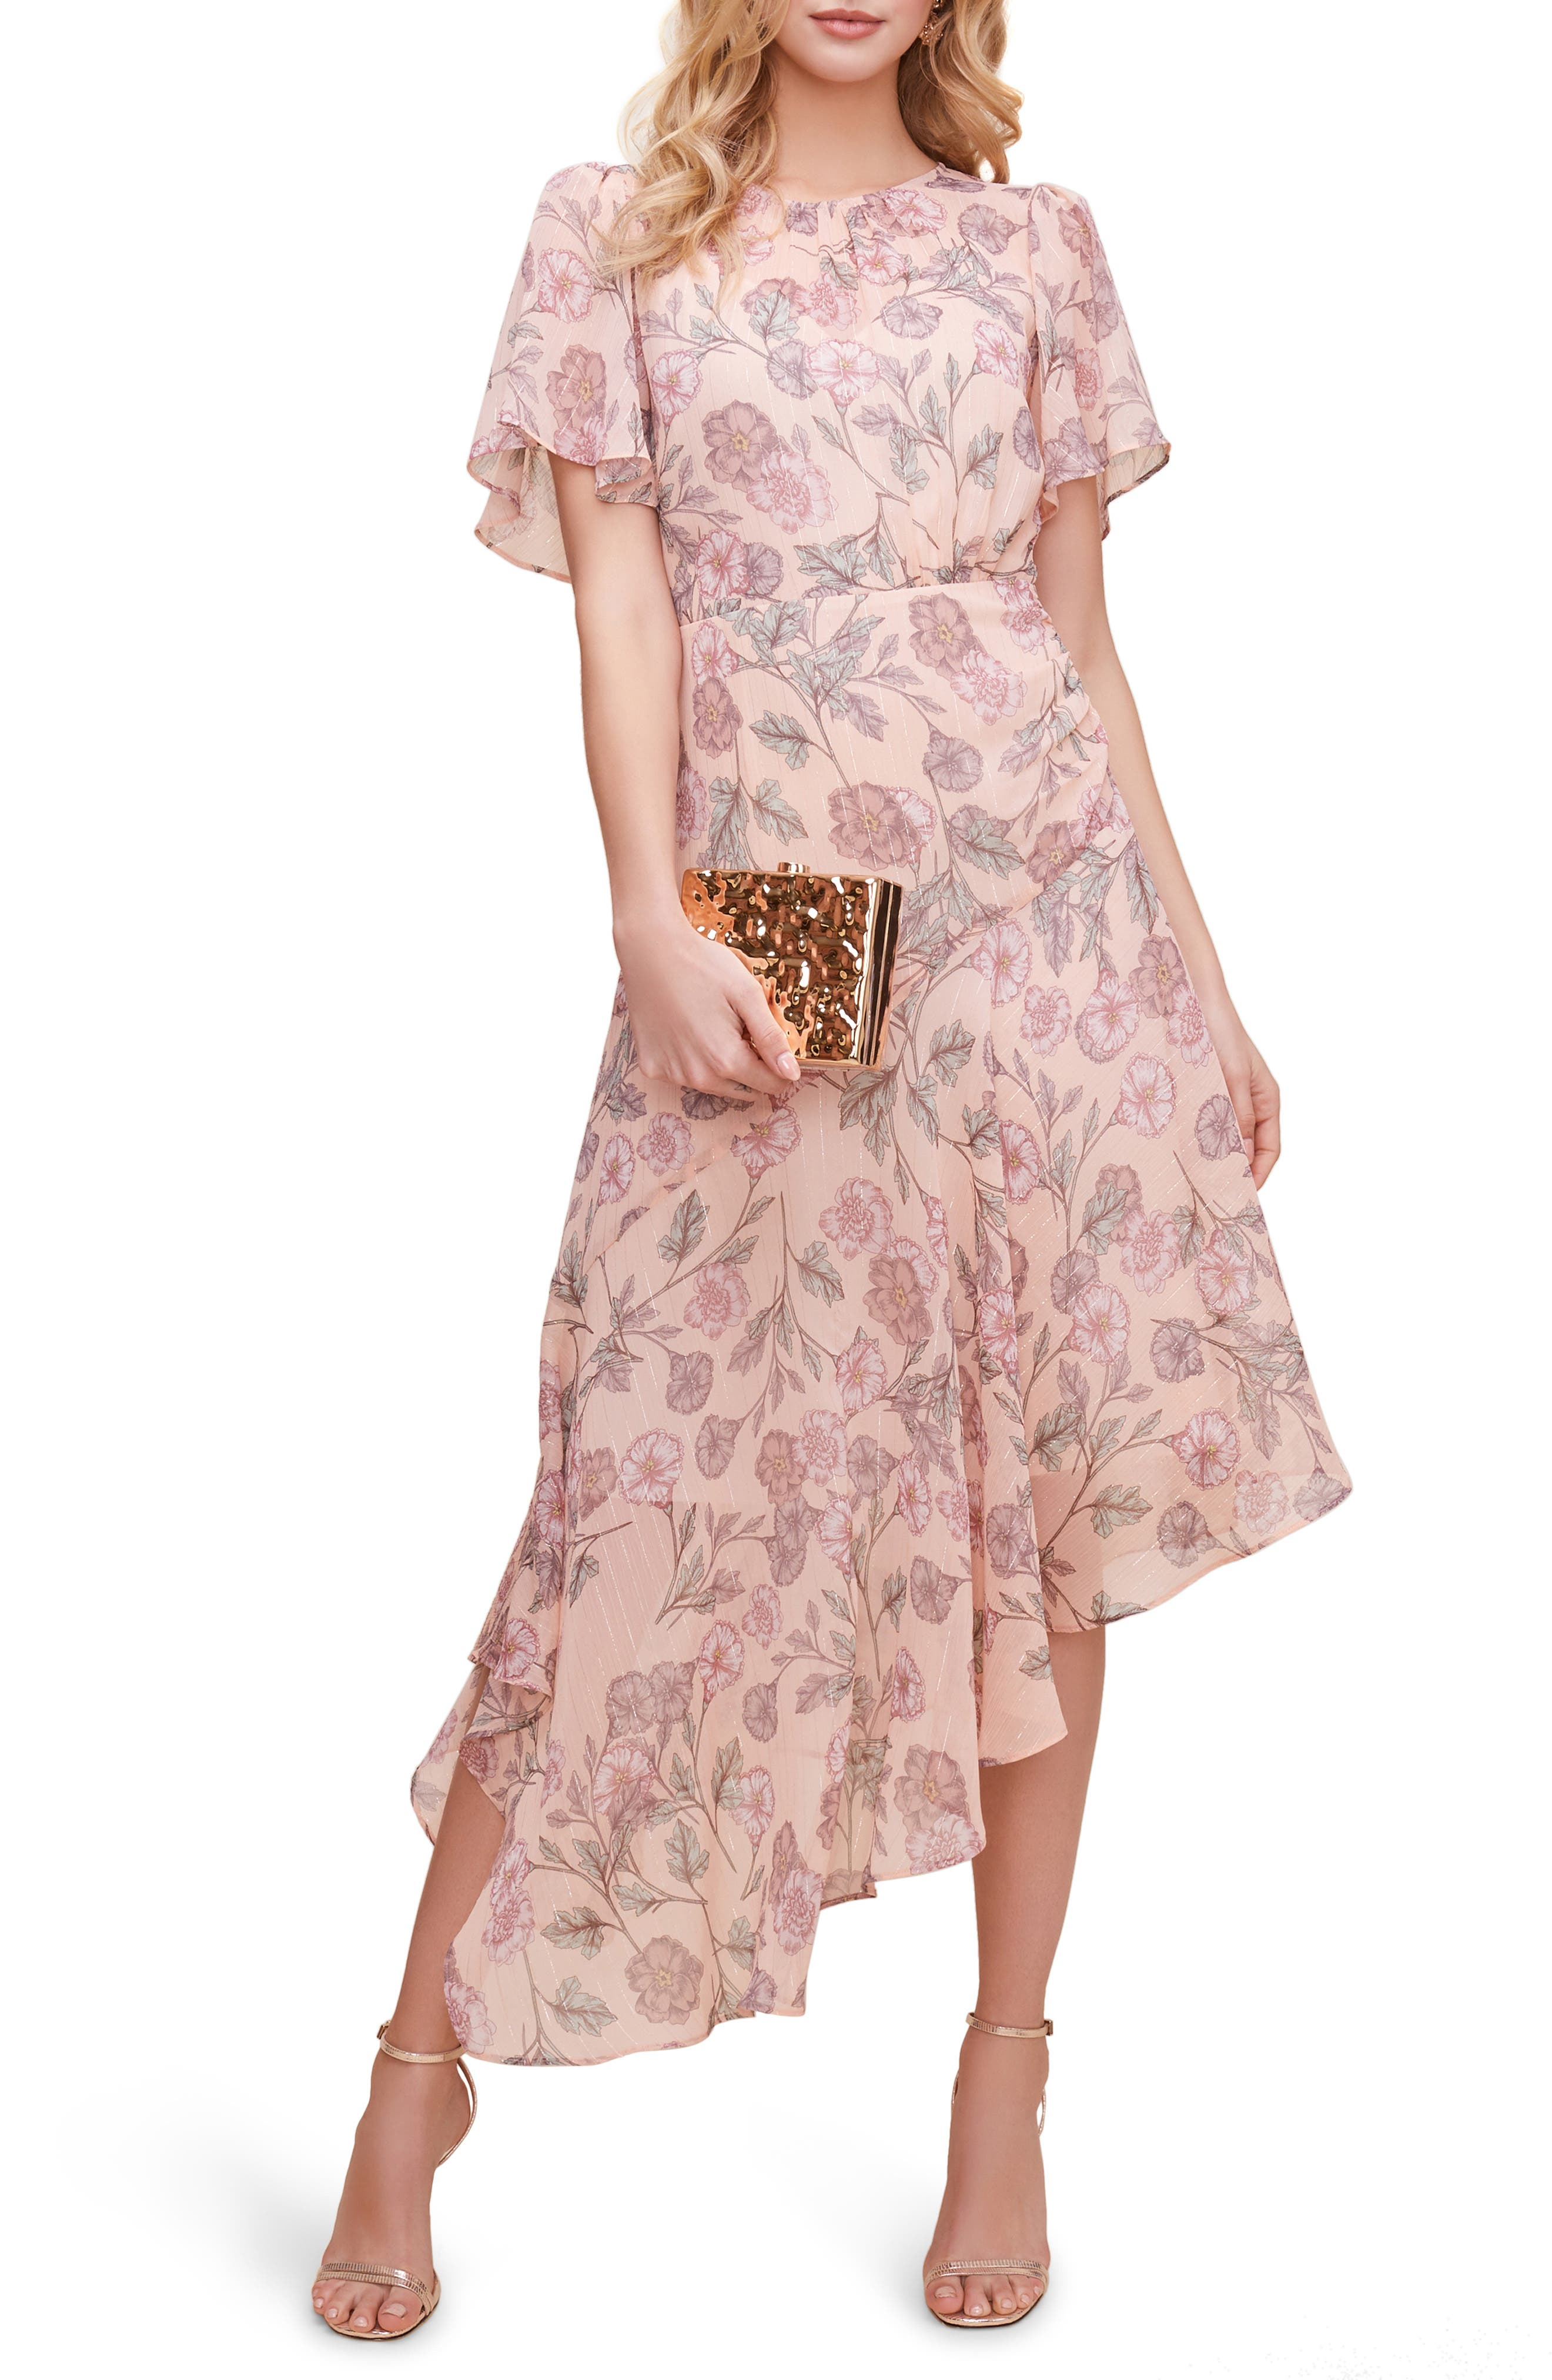 Modest, Mature, Mrs. Vintage Dresses – 20s, 30s, 40s, 50s, 60s Womens Astr The Label Floral Print Dress Size X-Large - Pink $39.90 AT vintagedancer.com